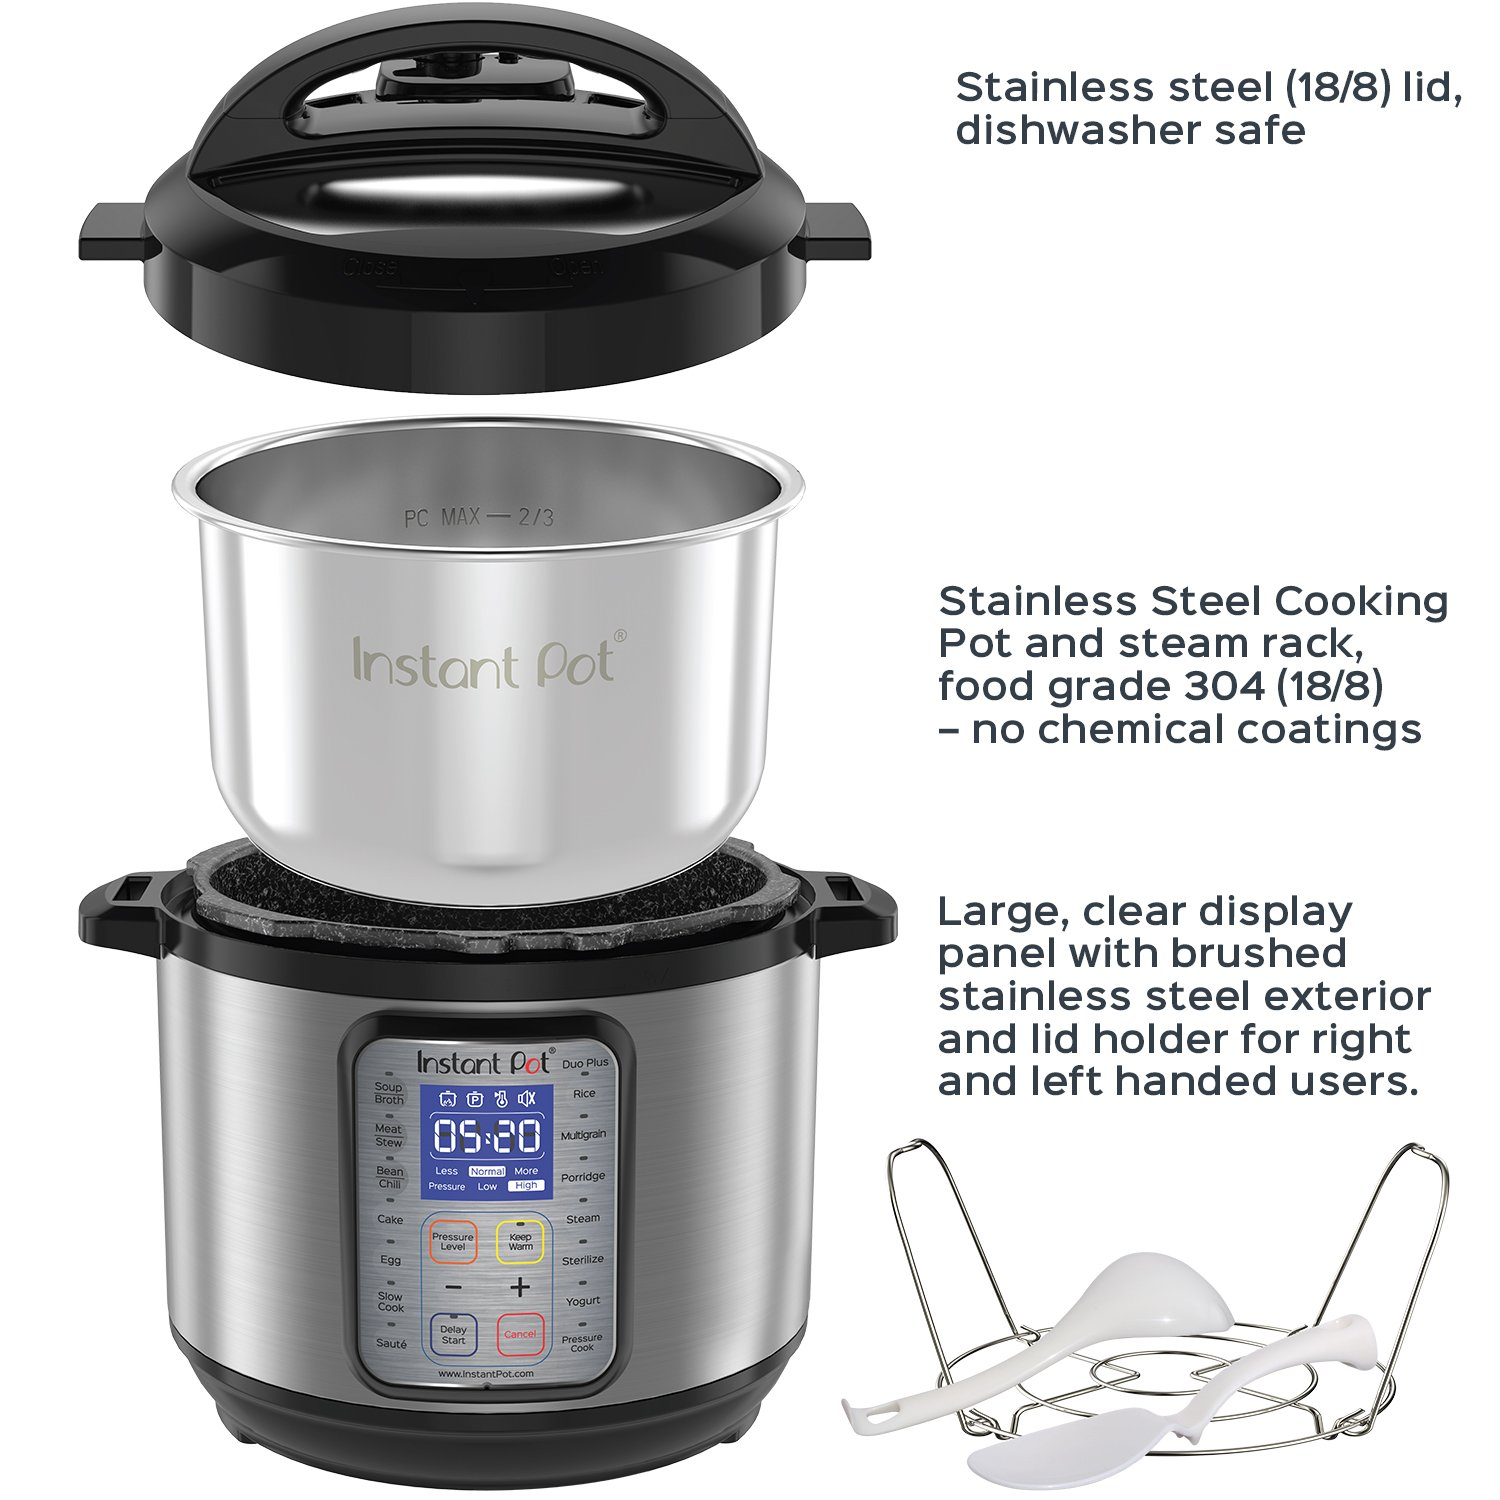 Instant Pot DUO Plus 8 Qt 9-in-1 Multi- Use Programmable Pressure Cooker, Slow Cooker, Rice Cooker, Yogurt Maker, Egg Cooker, Sauté, Steamer, Warmer, and Sterilizer by Instant Pot (Image #4)